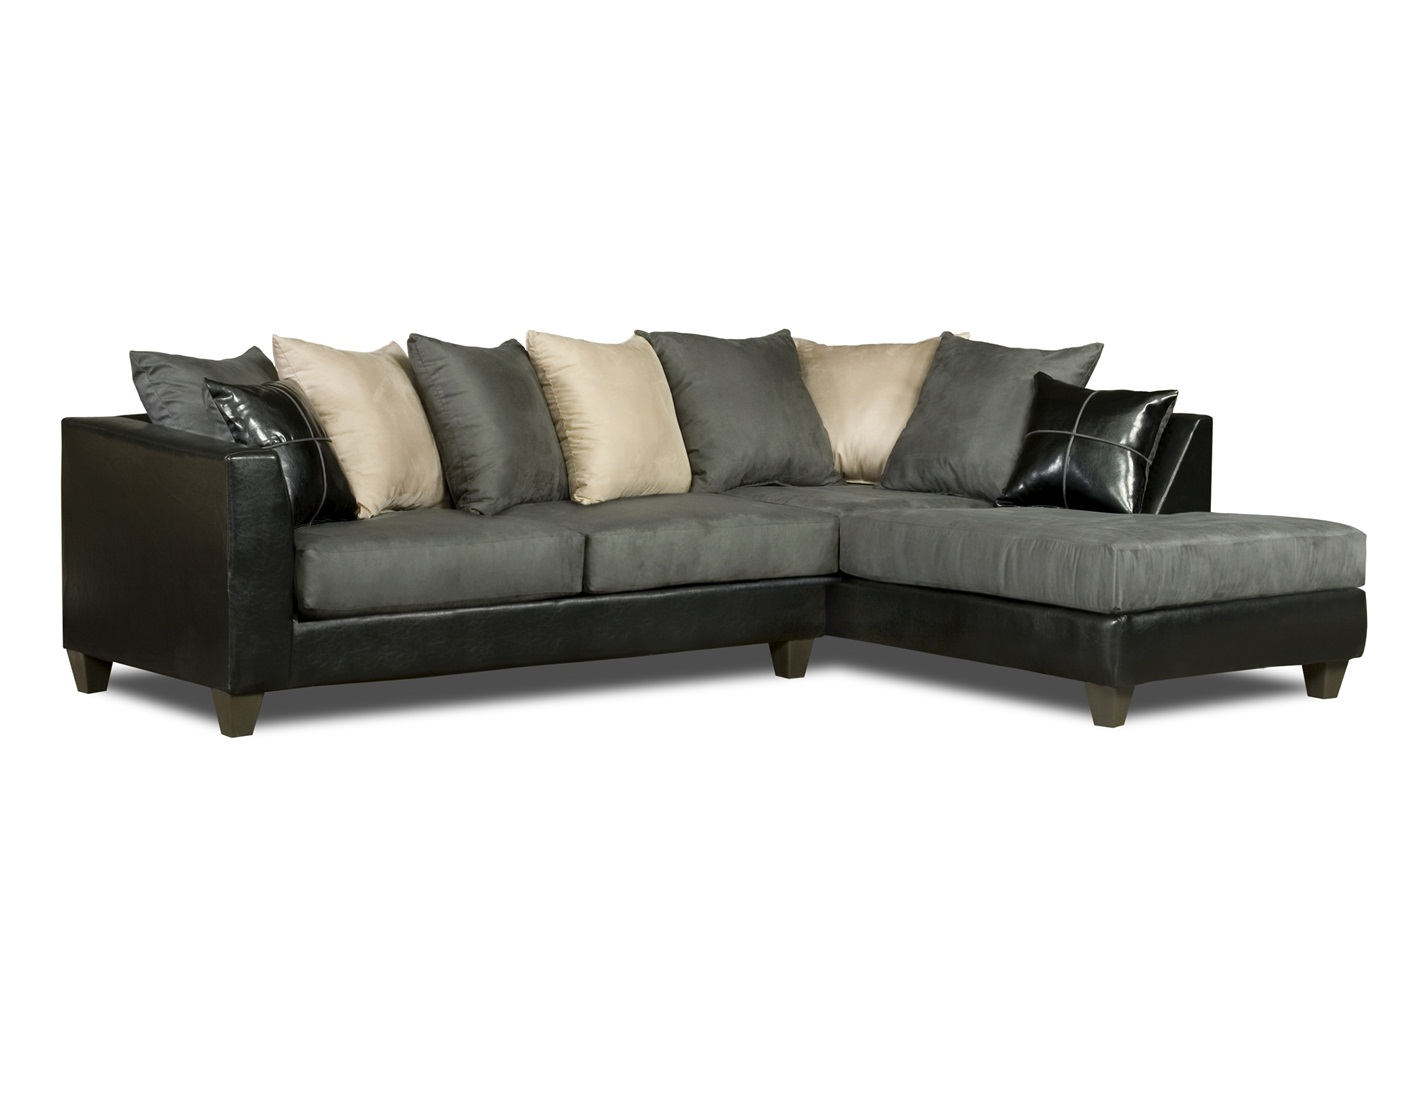 Dark grey microfiber sectional sofa with chaise for Black and silver chaise lounge